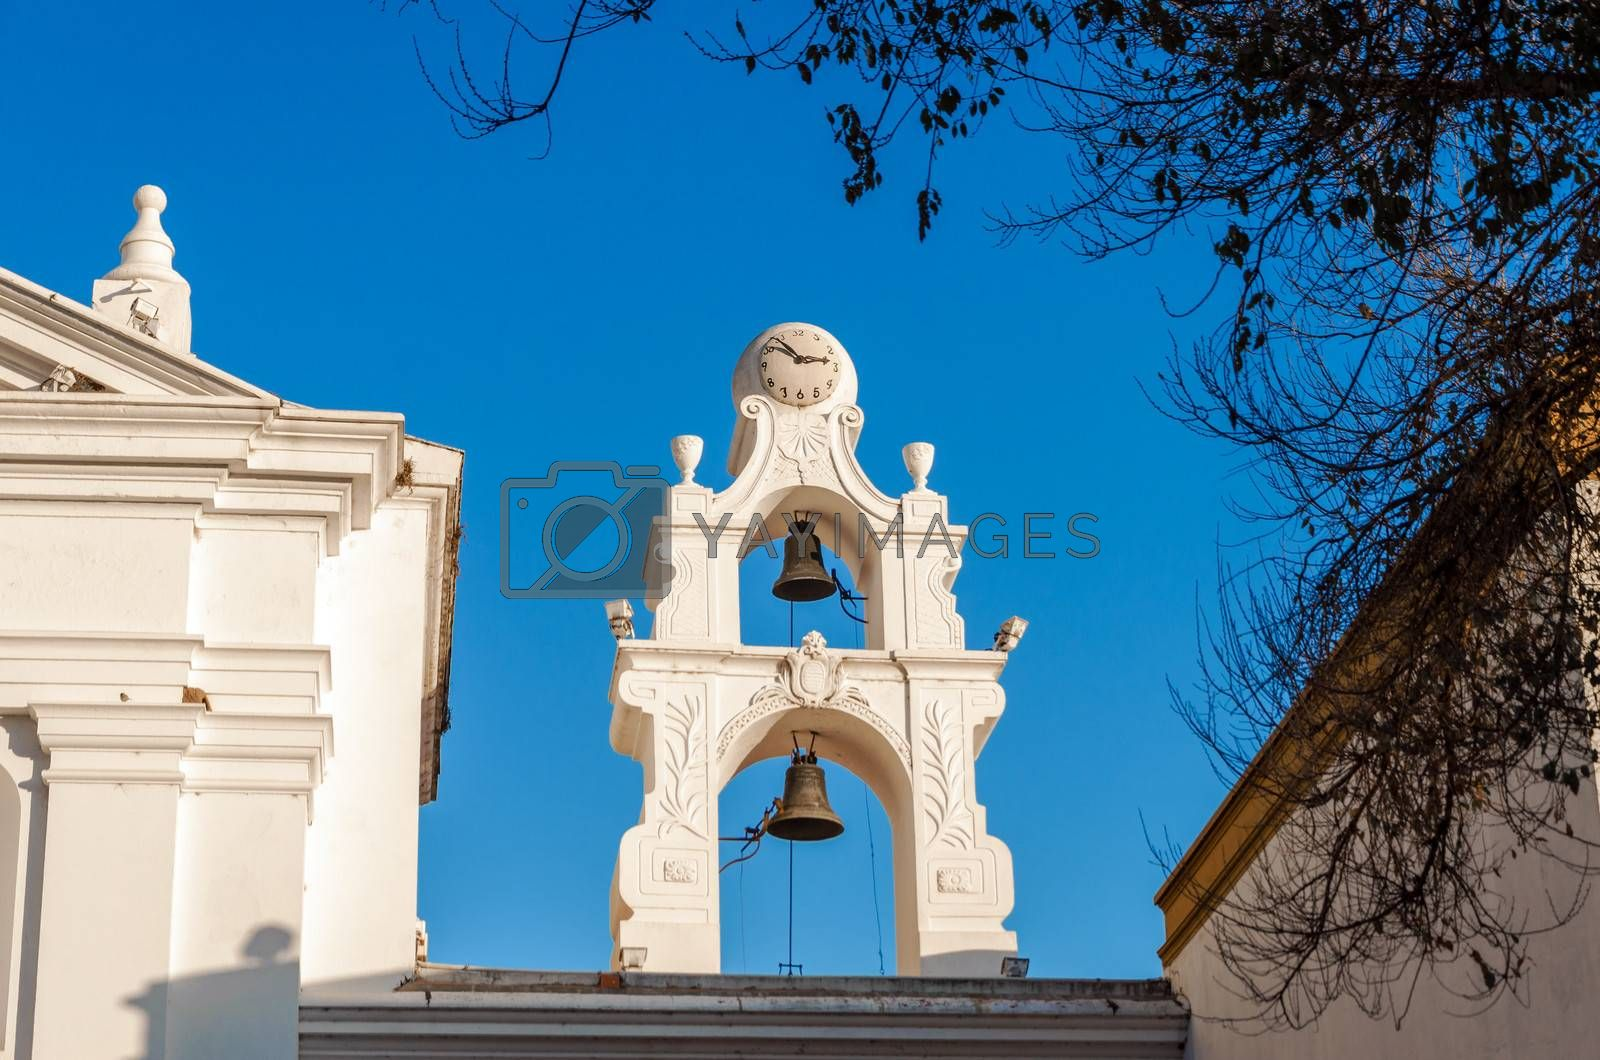 Bells on a white church in Recoleta neighborhood of Buenos Aires, Argentina